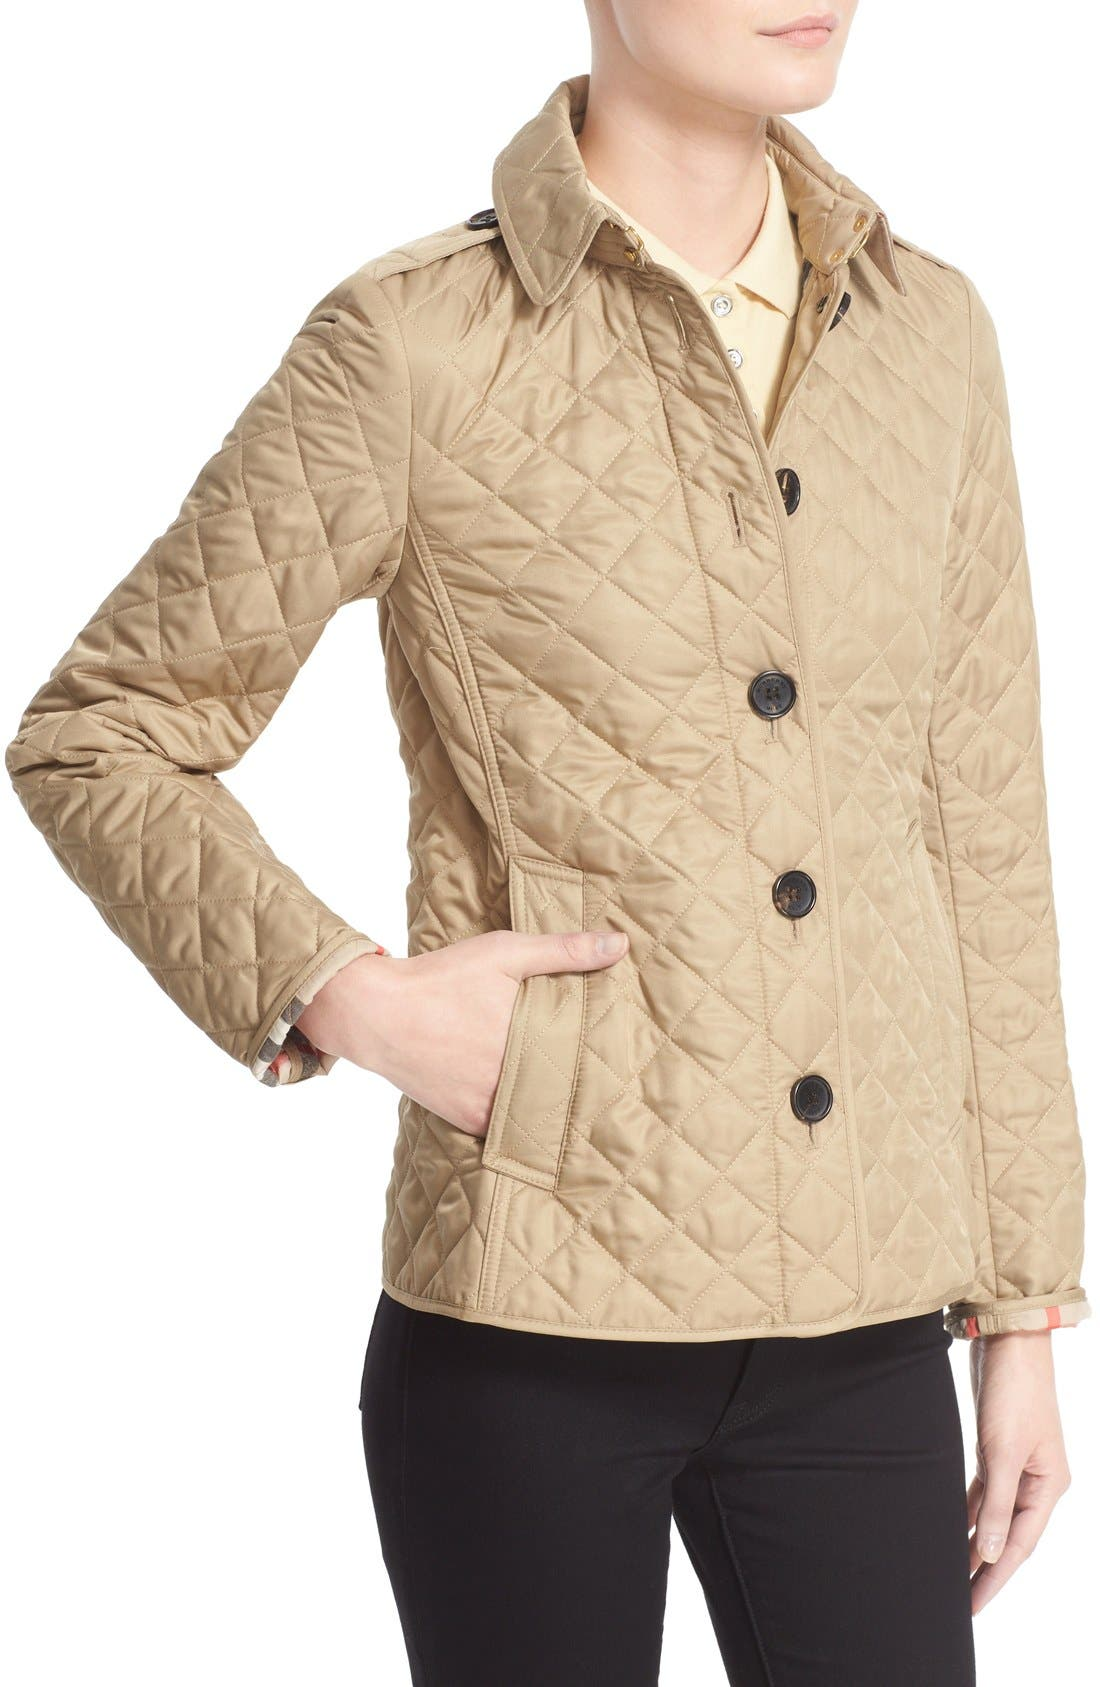 Ashurst Quilted Jacket,                             Alternate thumbnail 7, color,                             270